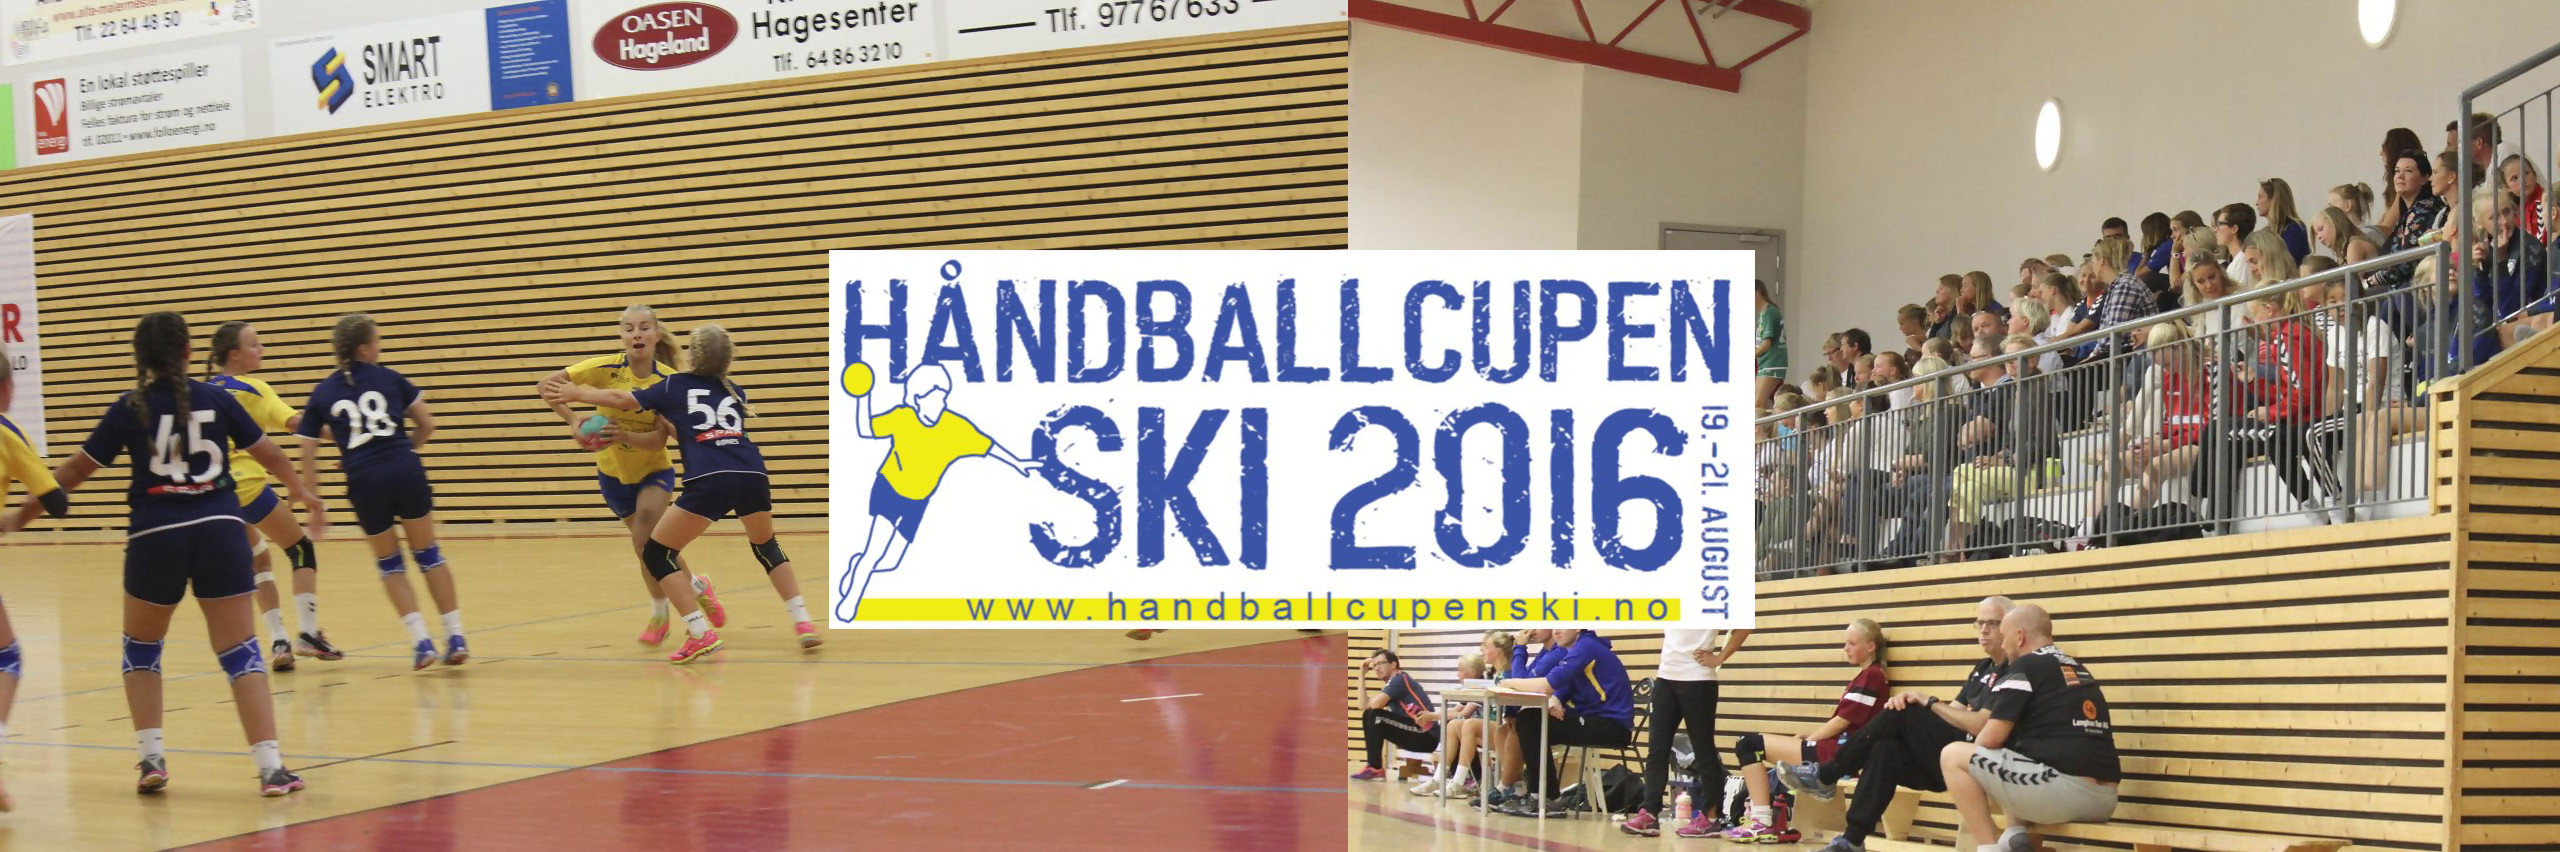 Håndballcupen Ski 2016 Live streaming